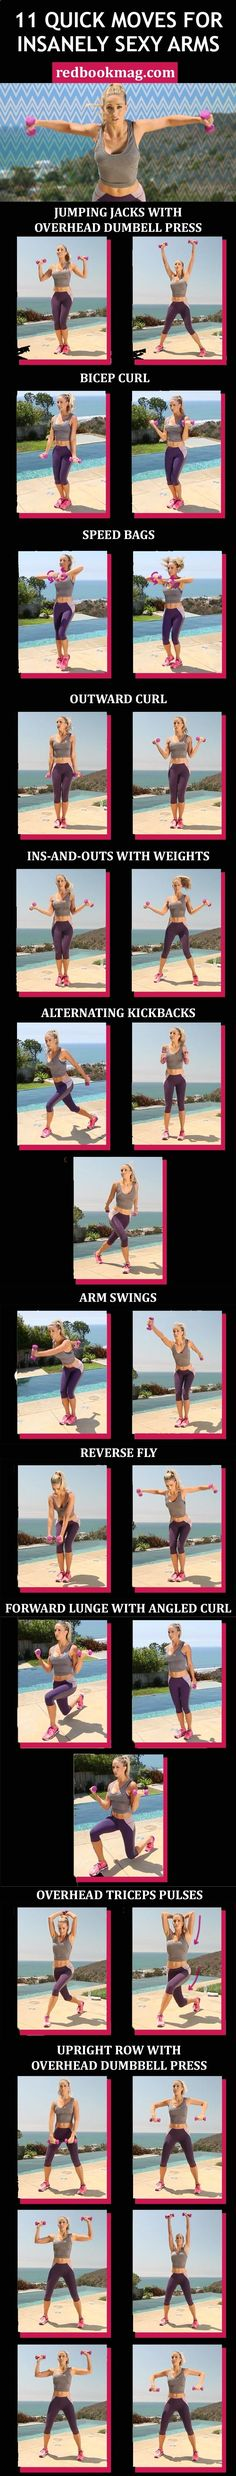 SEXY ARM WORKOUT FOR WOMEN: Grab a set of to dumbbells, and do 20 to 30 reps of each move in quick succession to tone your arms, back, chest, and legs. Repeat the entire sequence two to three times to get toned arms fast! Click through for the fast diet Fitness Workouts, Training Fitness, Zumba Fitness, Fitness Diet, At Home Workouts, Fitness Motivation, Health Fitness, Arm Workouts, Fitness Shirts